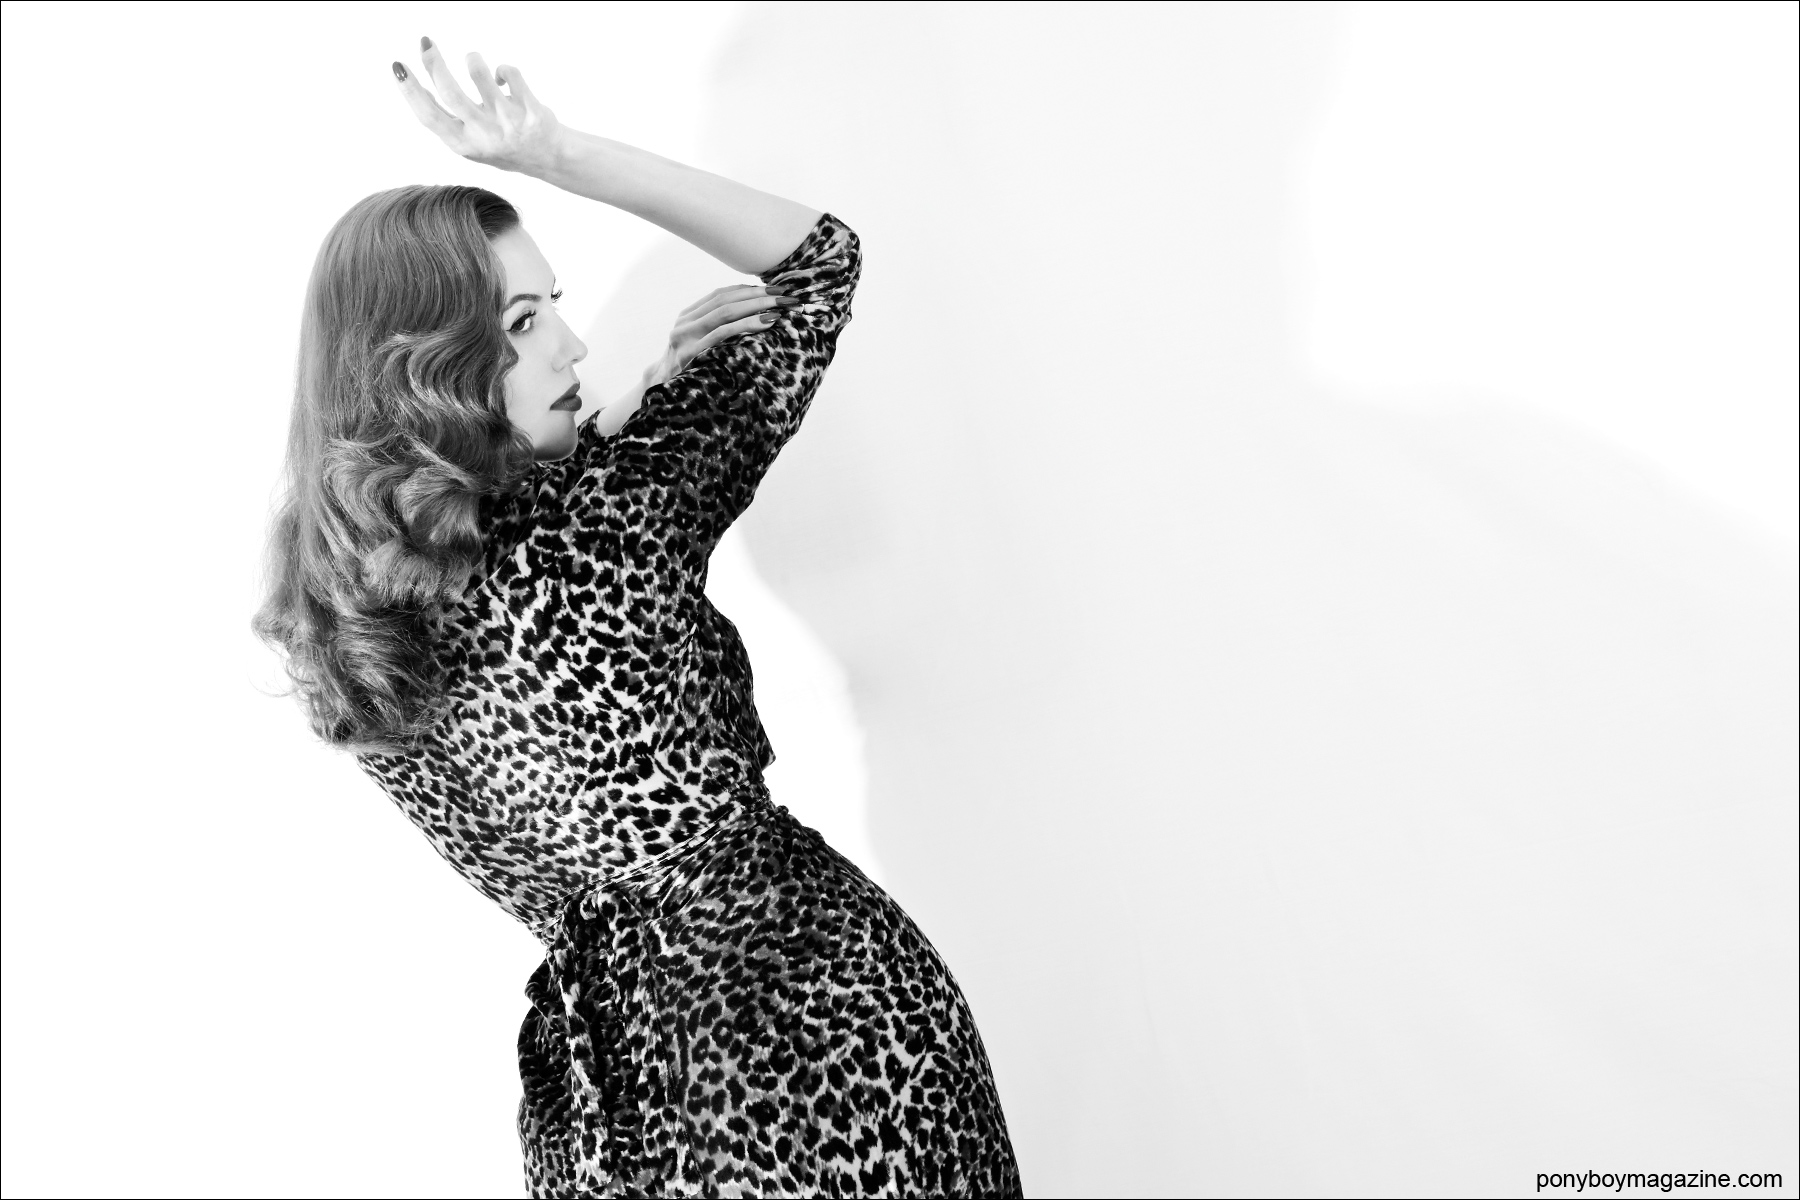 The lovely Lola Devlin photographed in 50's leopard for Ponyboy Magazine by Alexander Thompson.